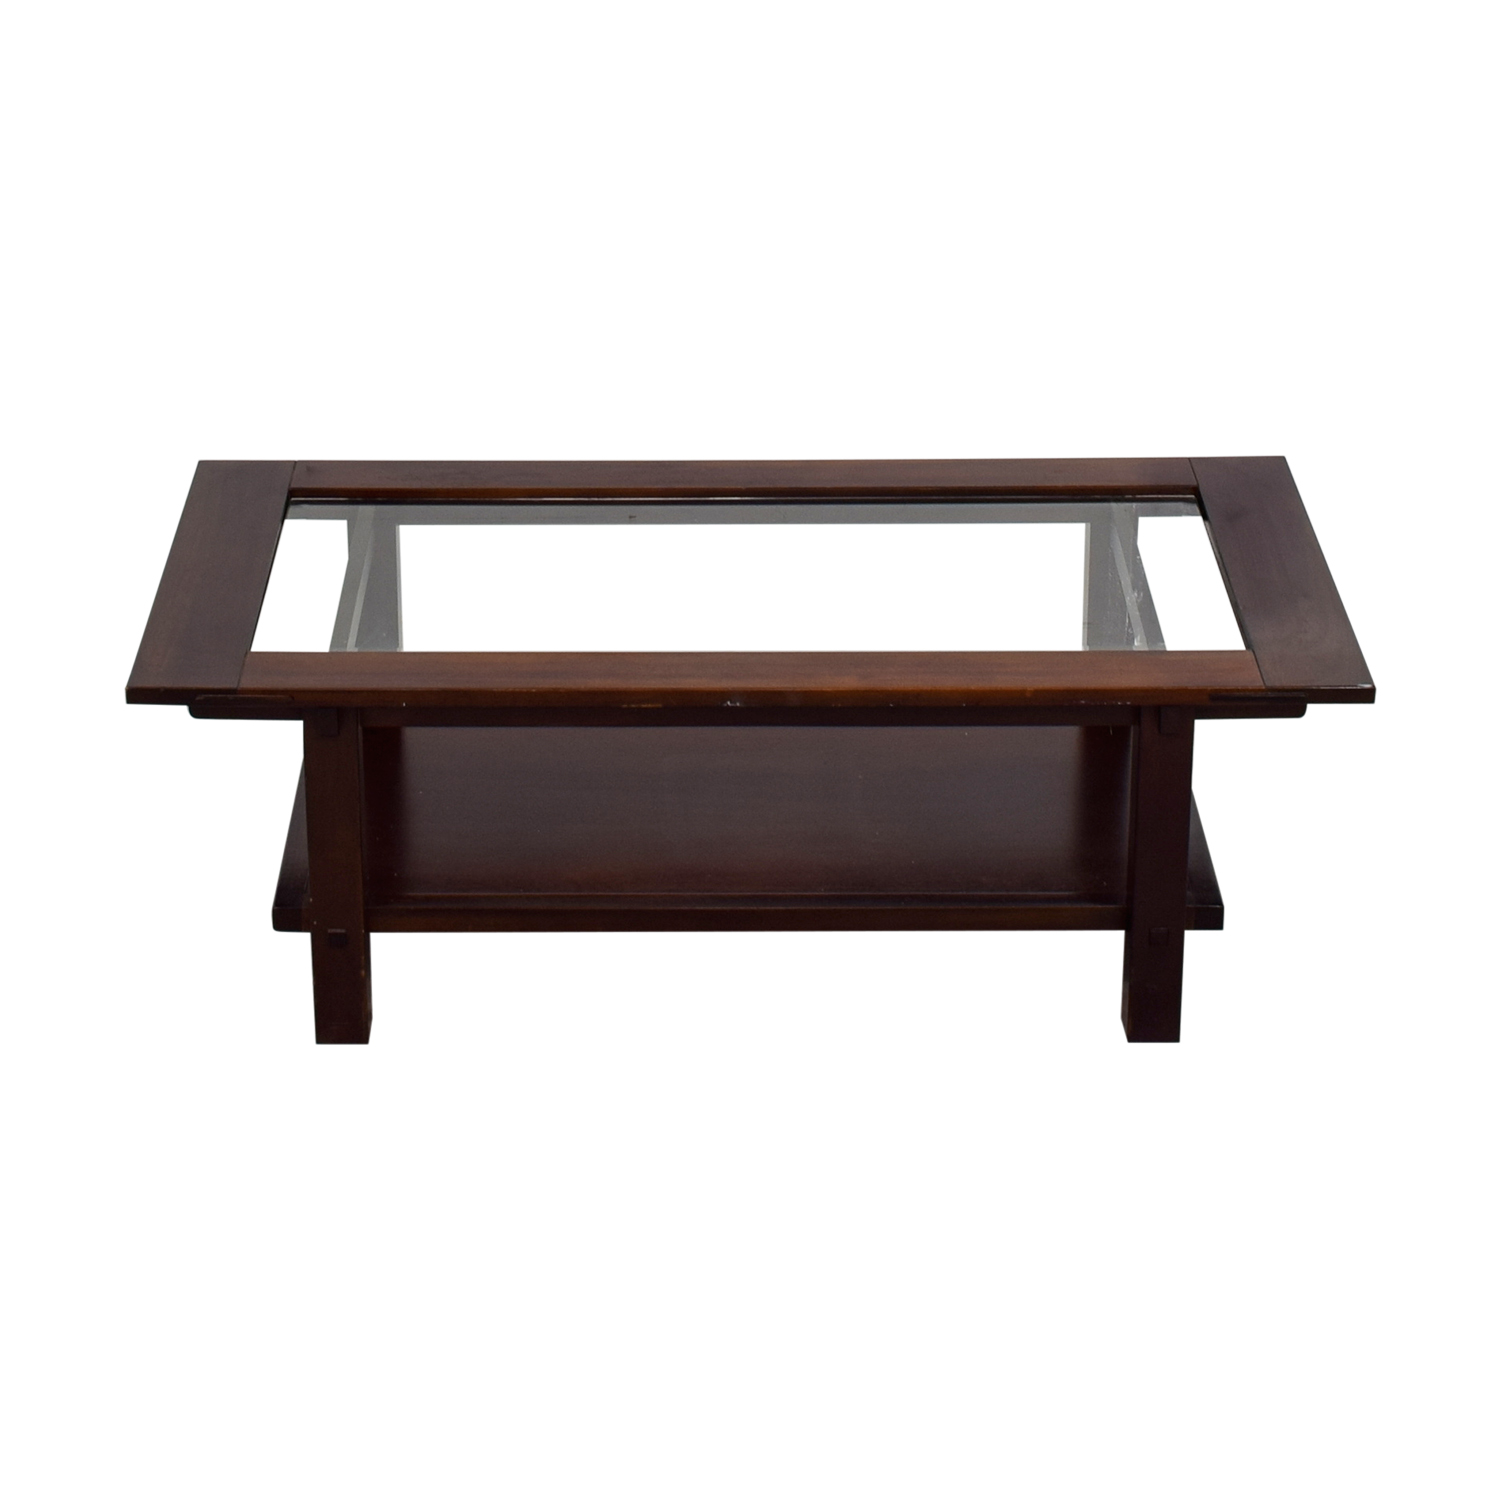 Glass and Wood Rectangular Coffee Table dimensions